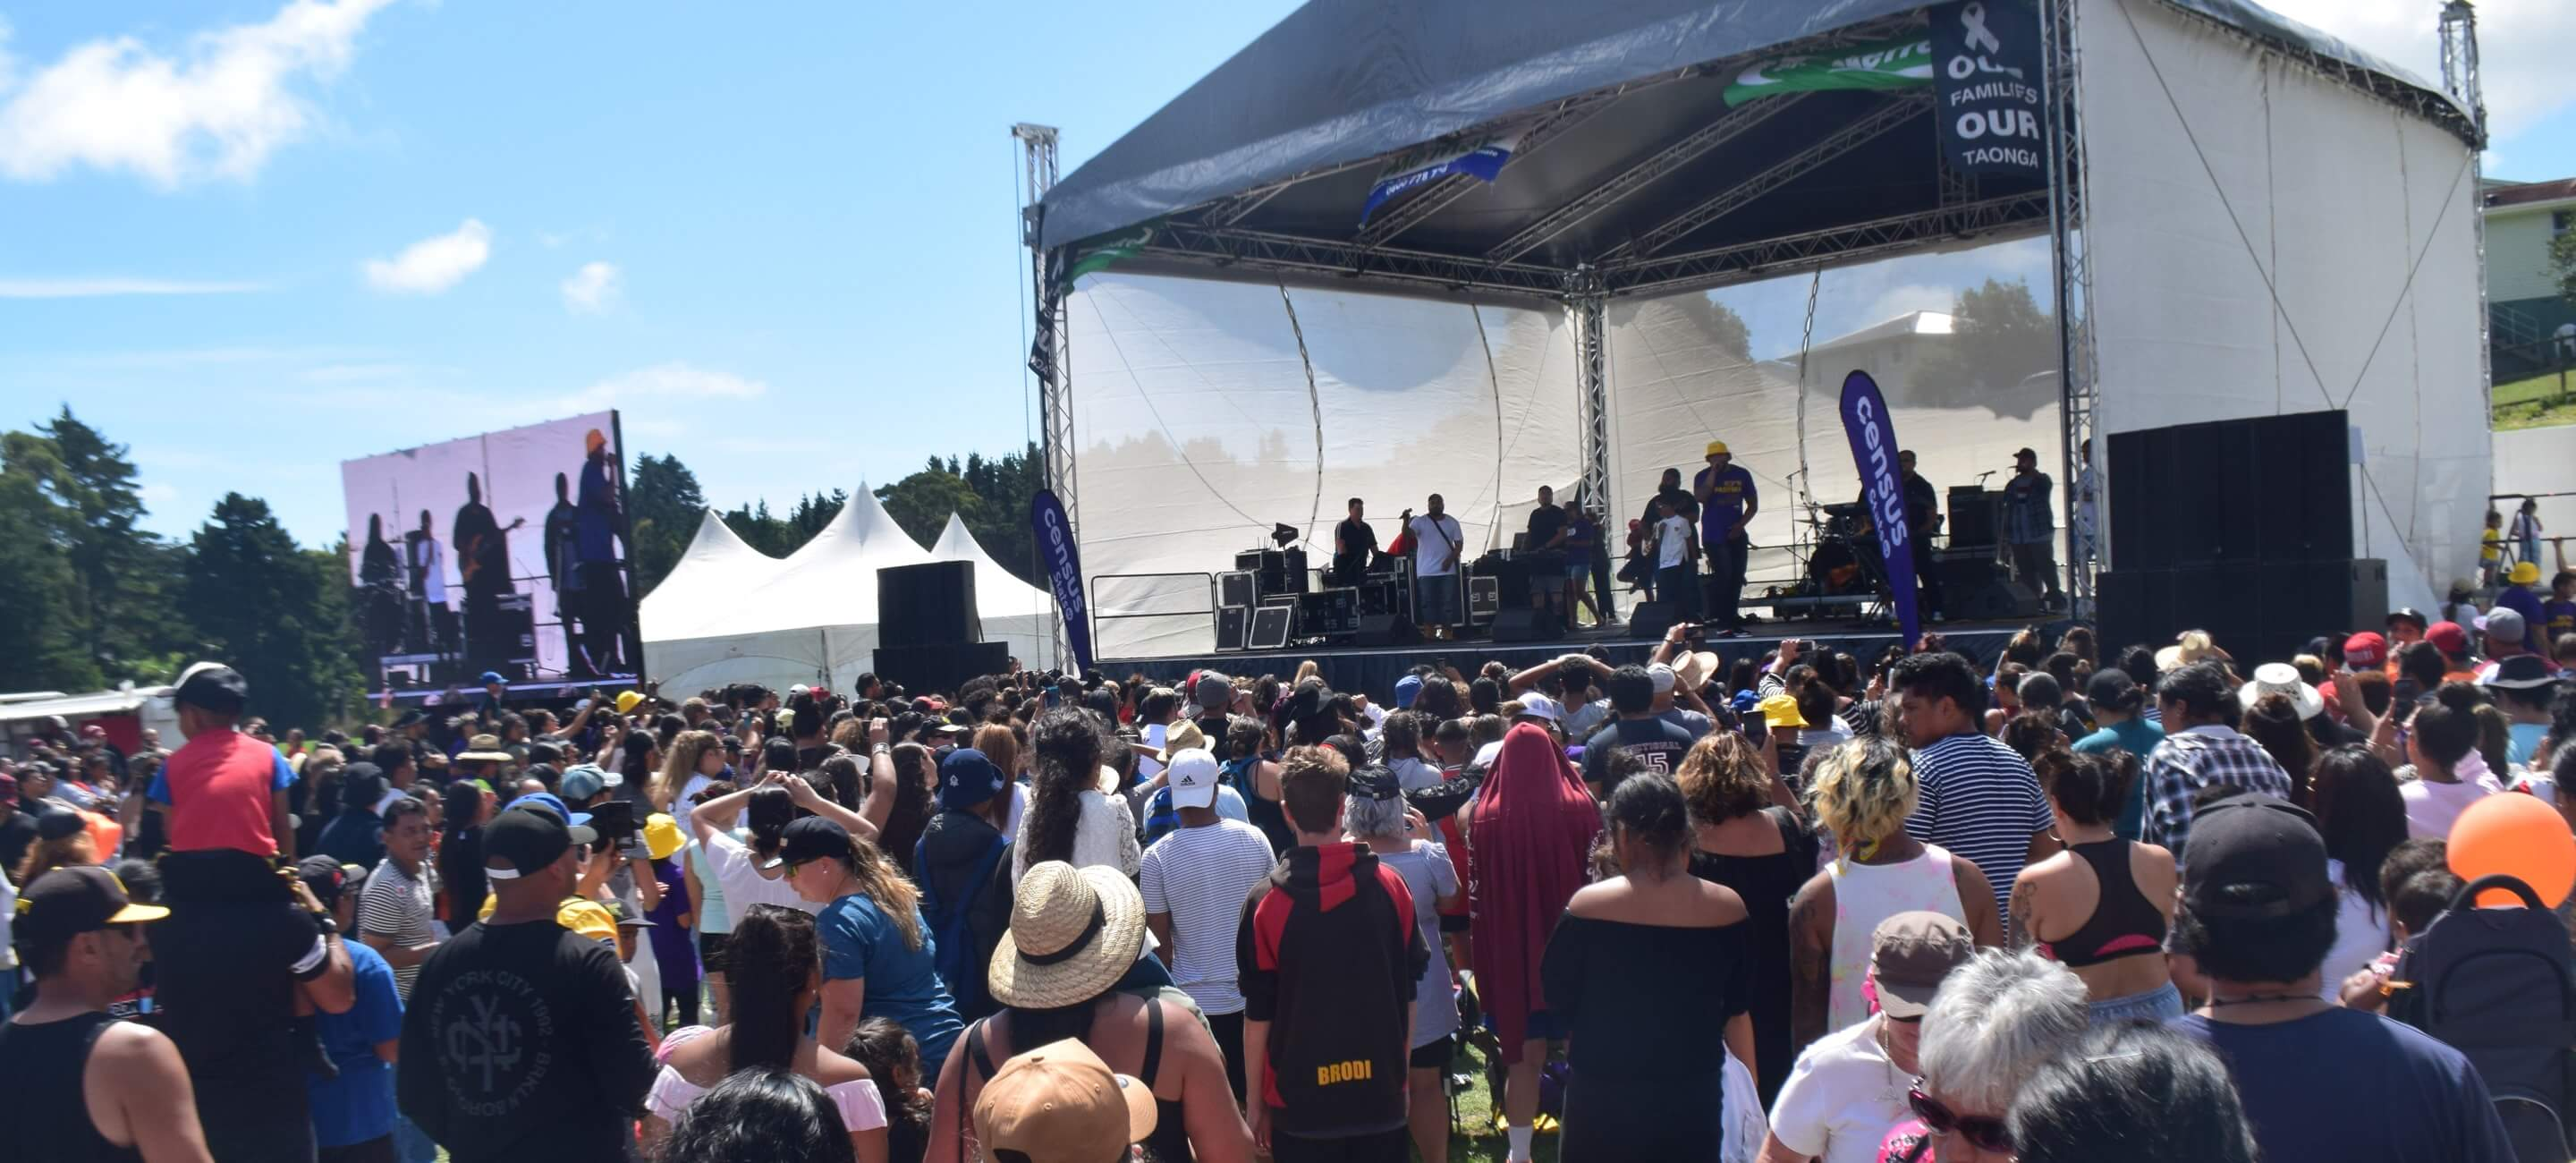 Sol3 Mio wow the crowd at Porirua Park in Cannons Creek